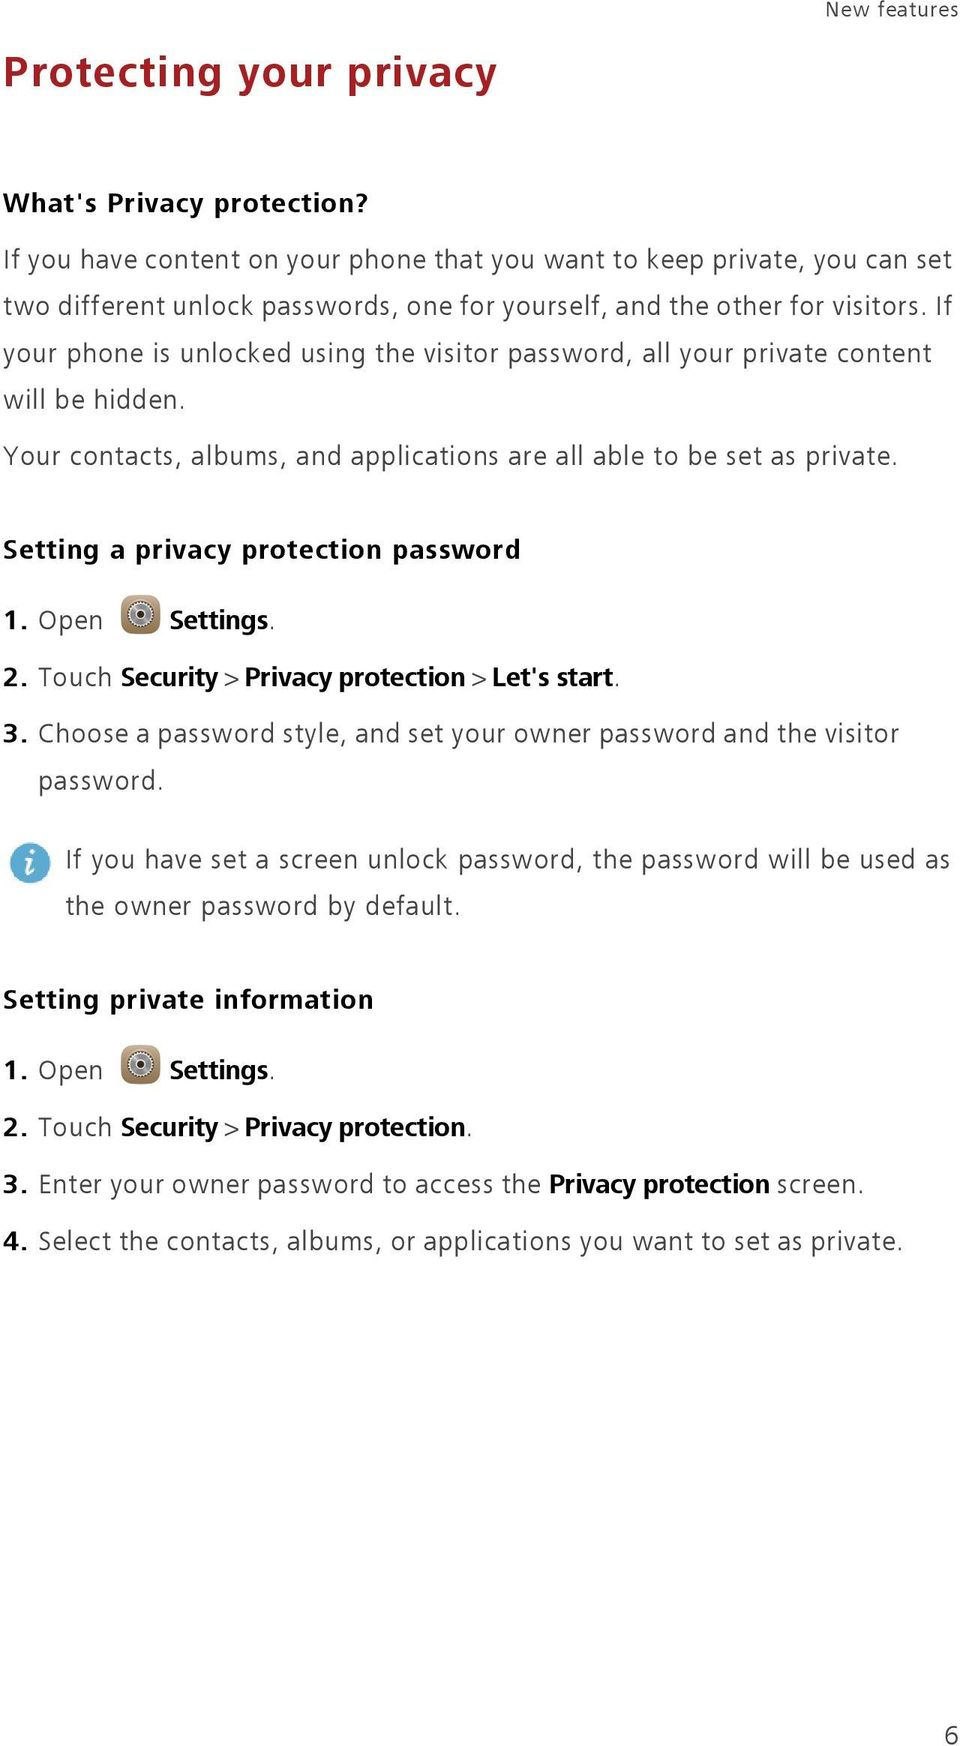 If your phone is unlocked using the visitor password, all your private content will be hidden. Your contacts, albums, and applications are all able to be set as private.